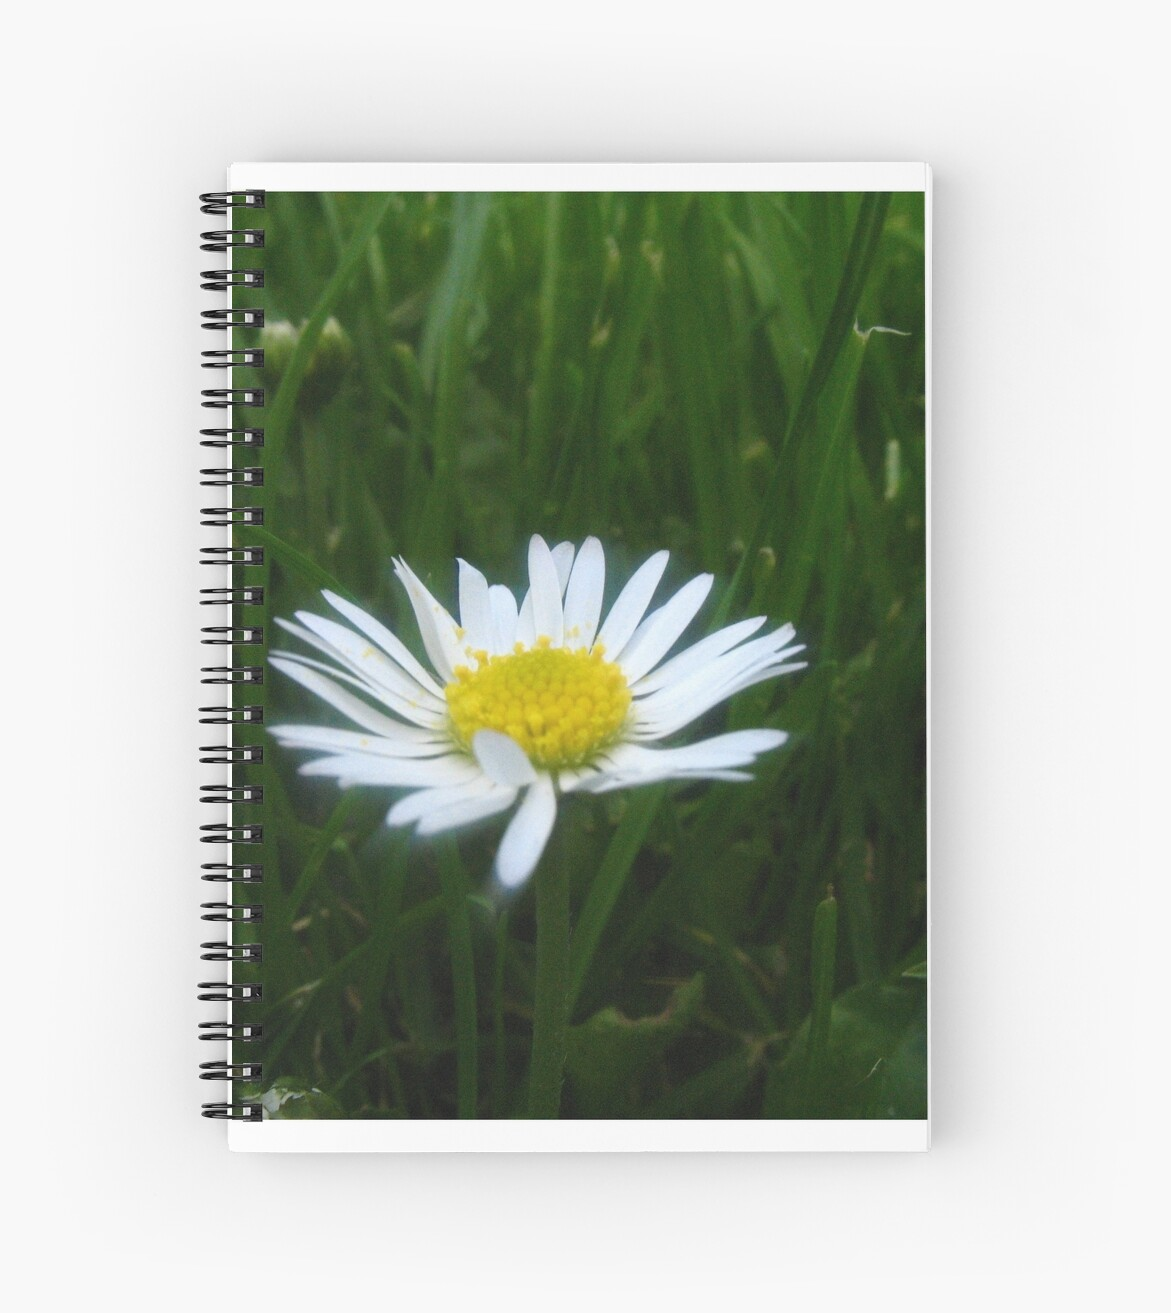 Daisy by James Searle